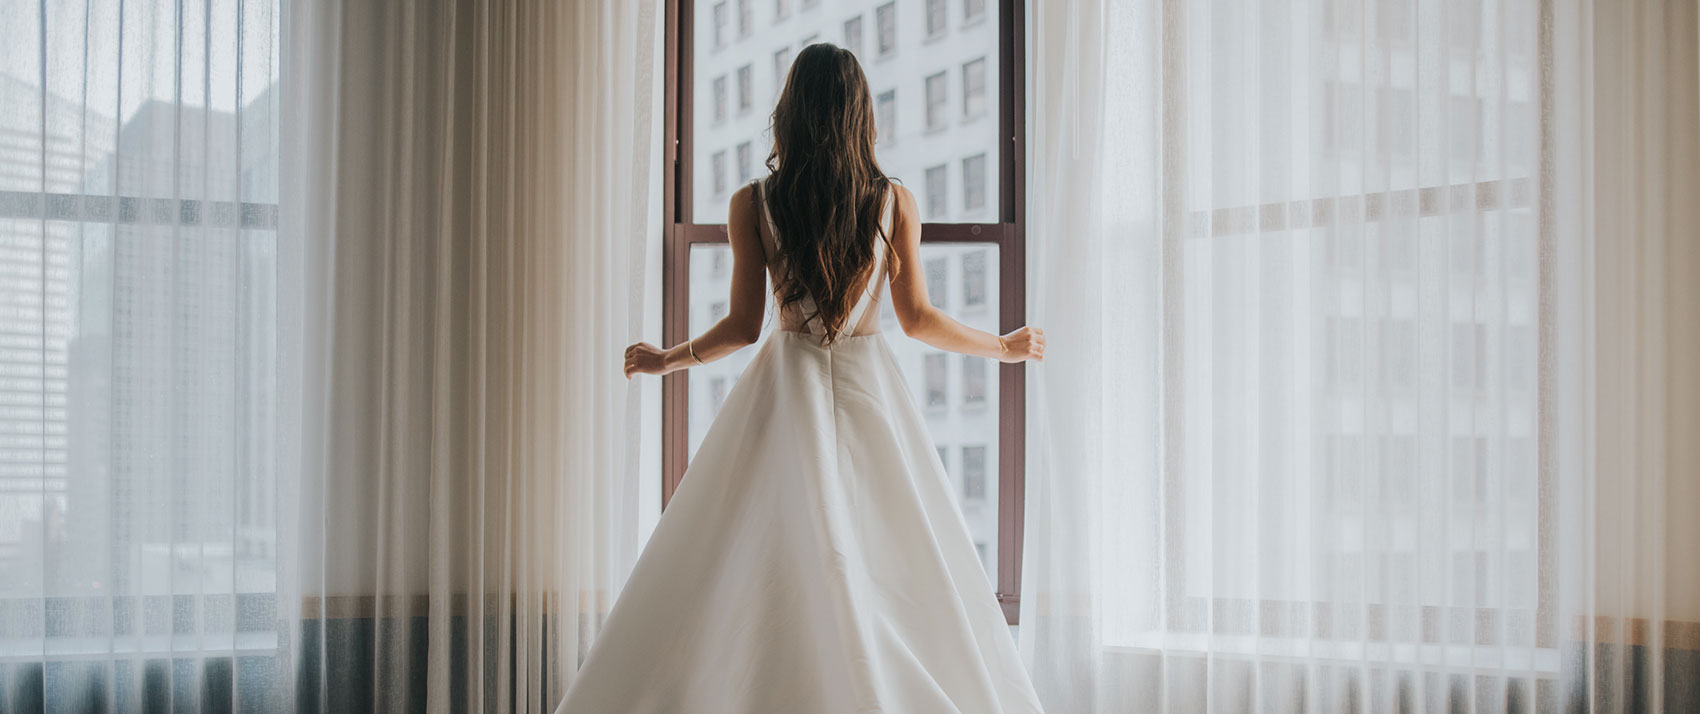 bride in room